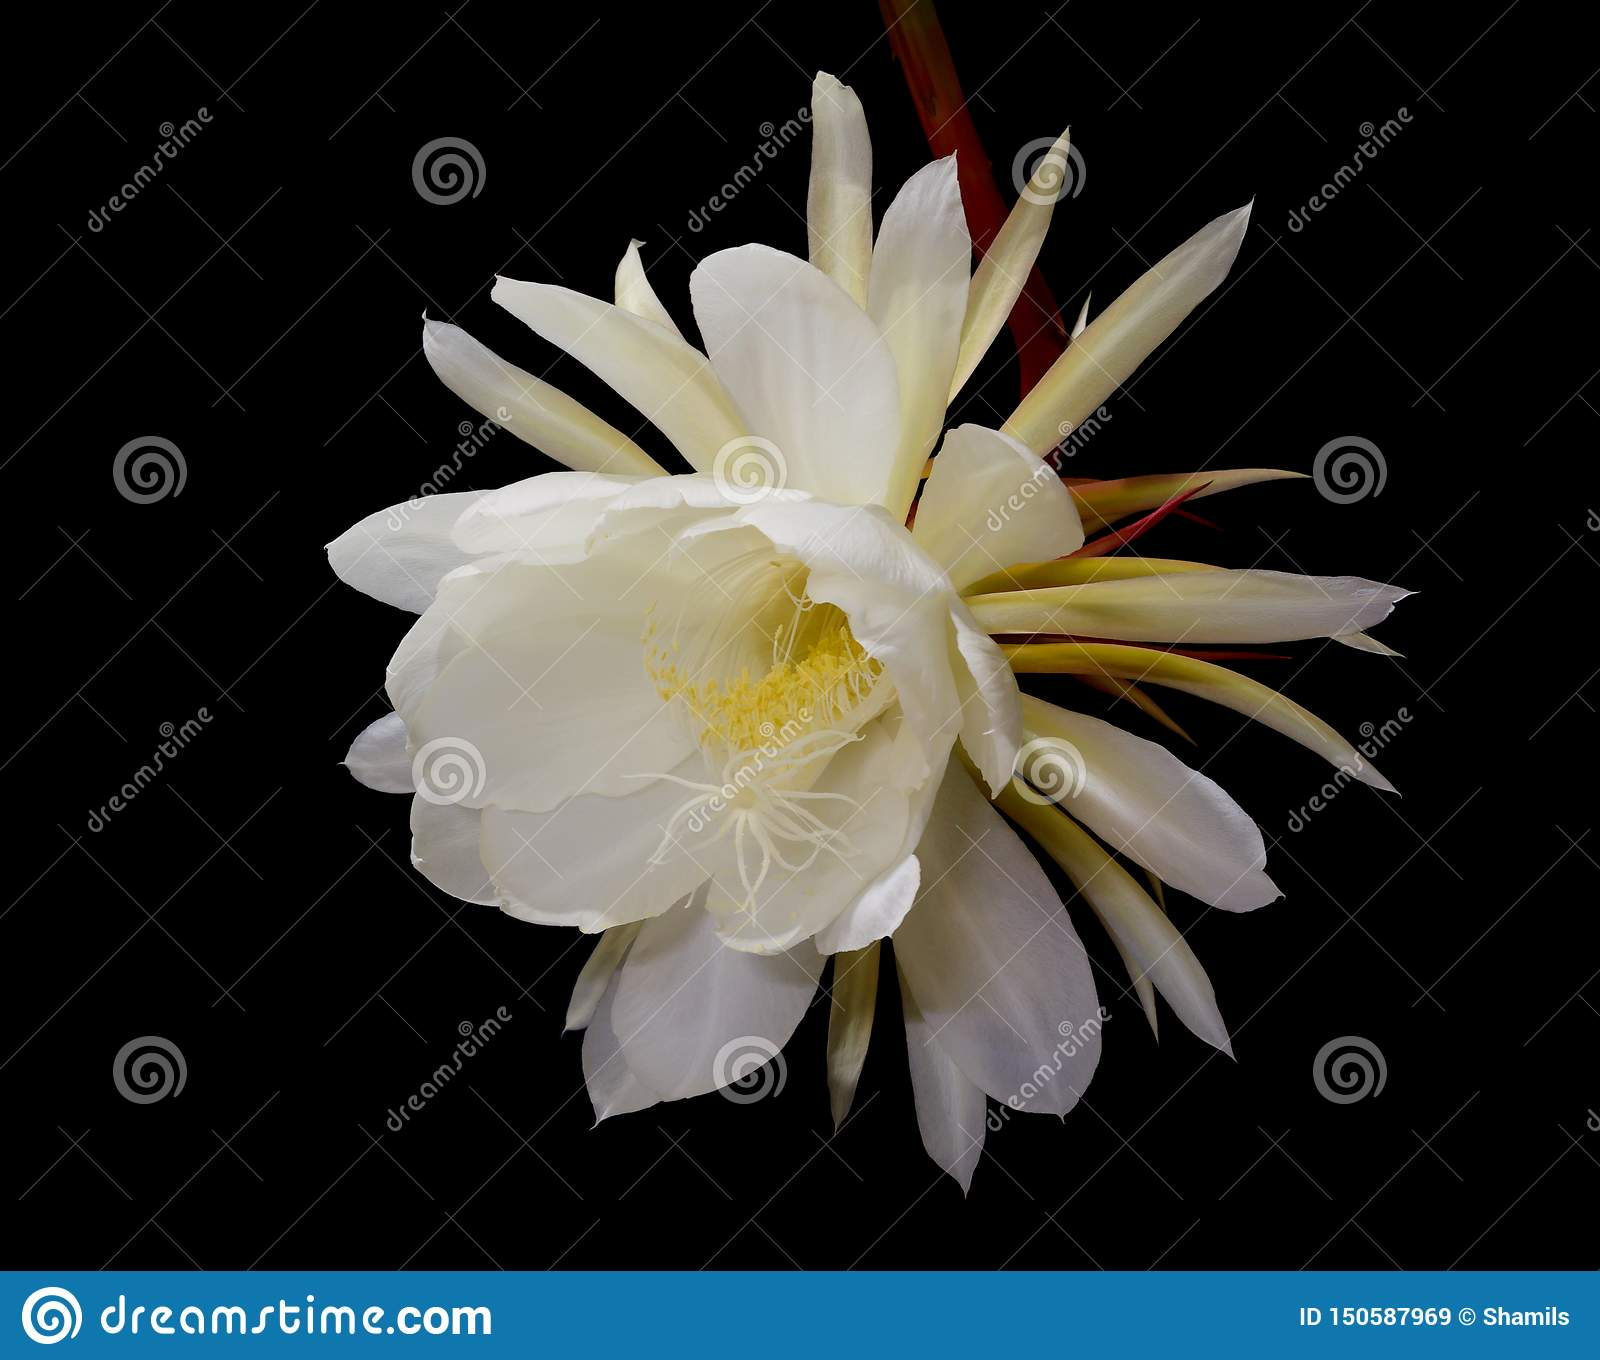 Night Blooming Cereus Princess Of The Night Flower Stock Image